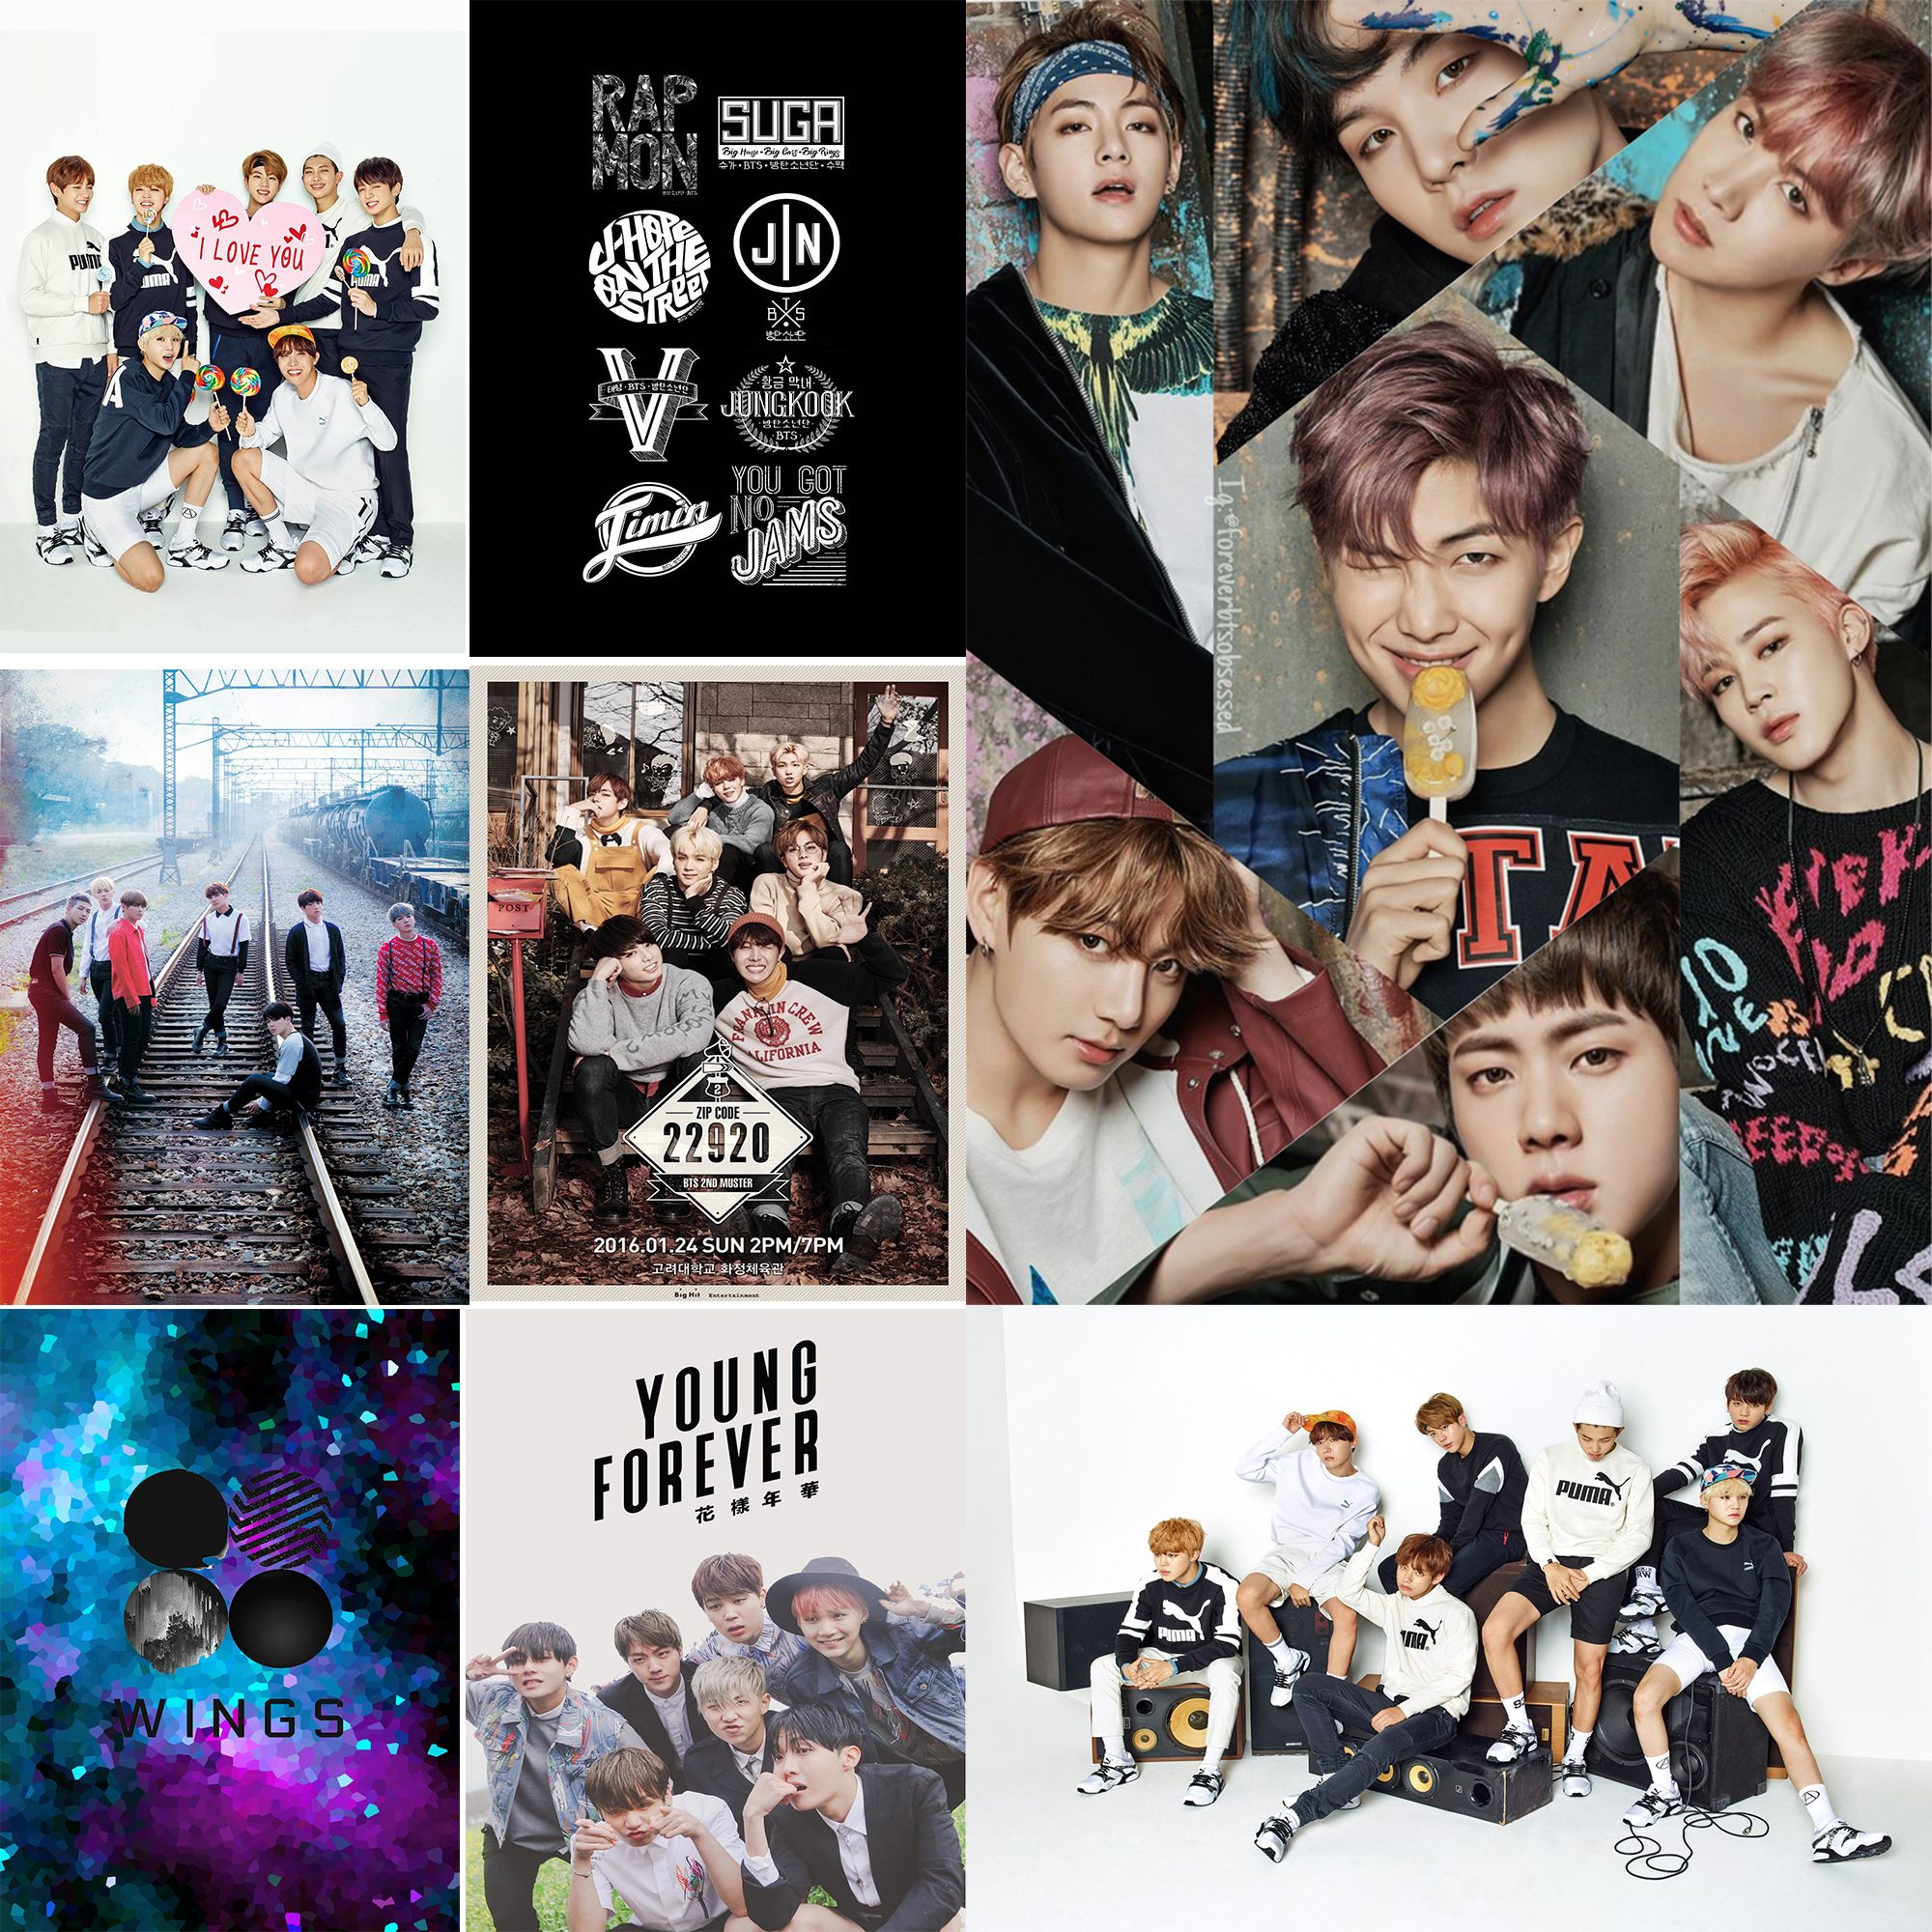 Bts Band Posters Wall Stickers White Paper Prints Home Decoration Home Art Mu13 Band Posters Poster Wall Bts Wallpaper